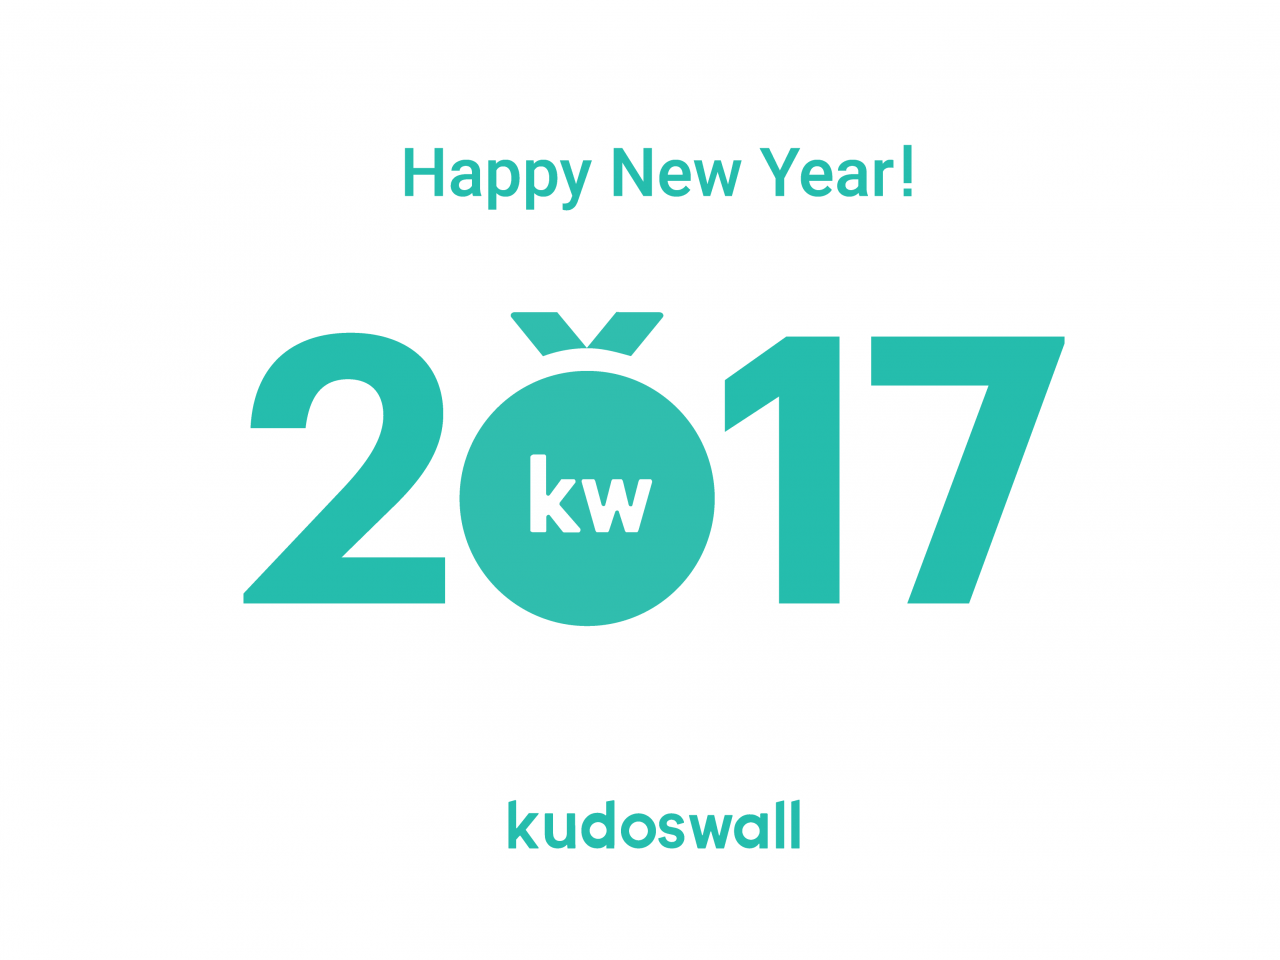 Wishing you a happy and kudos filled 2017